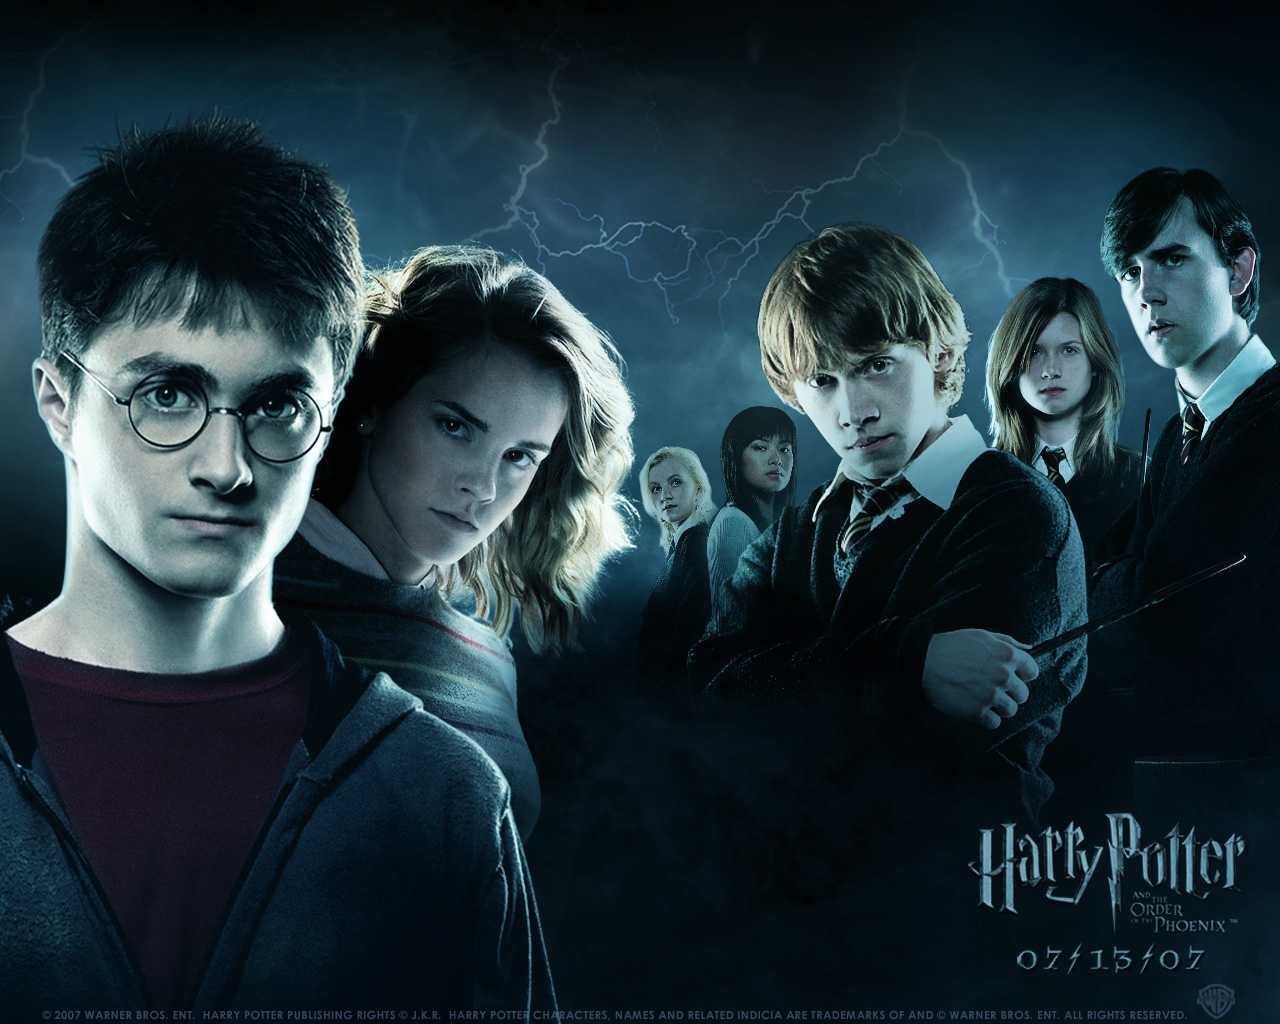 harry_potter_order_of_the_phoenix_poster.jpg